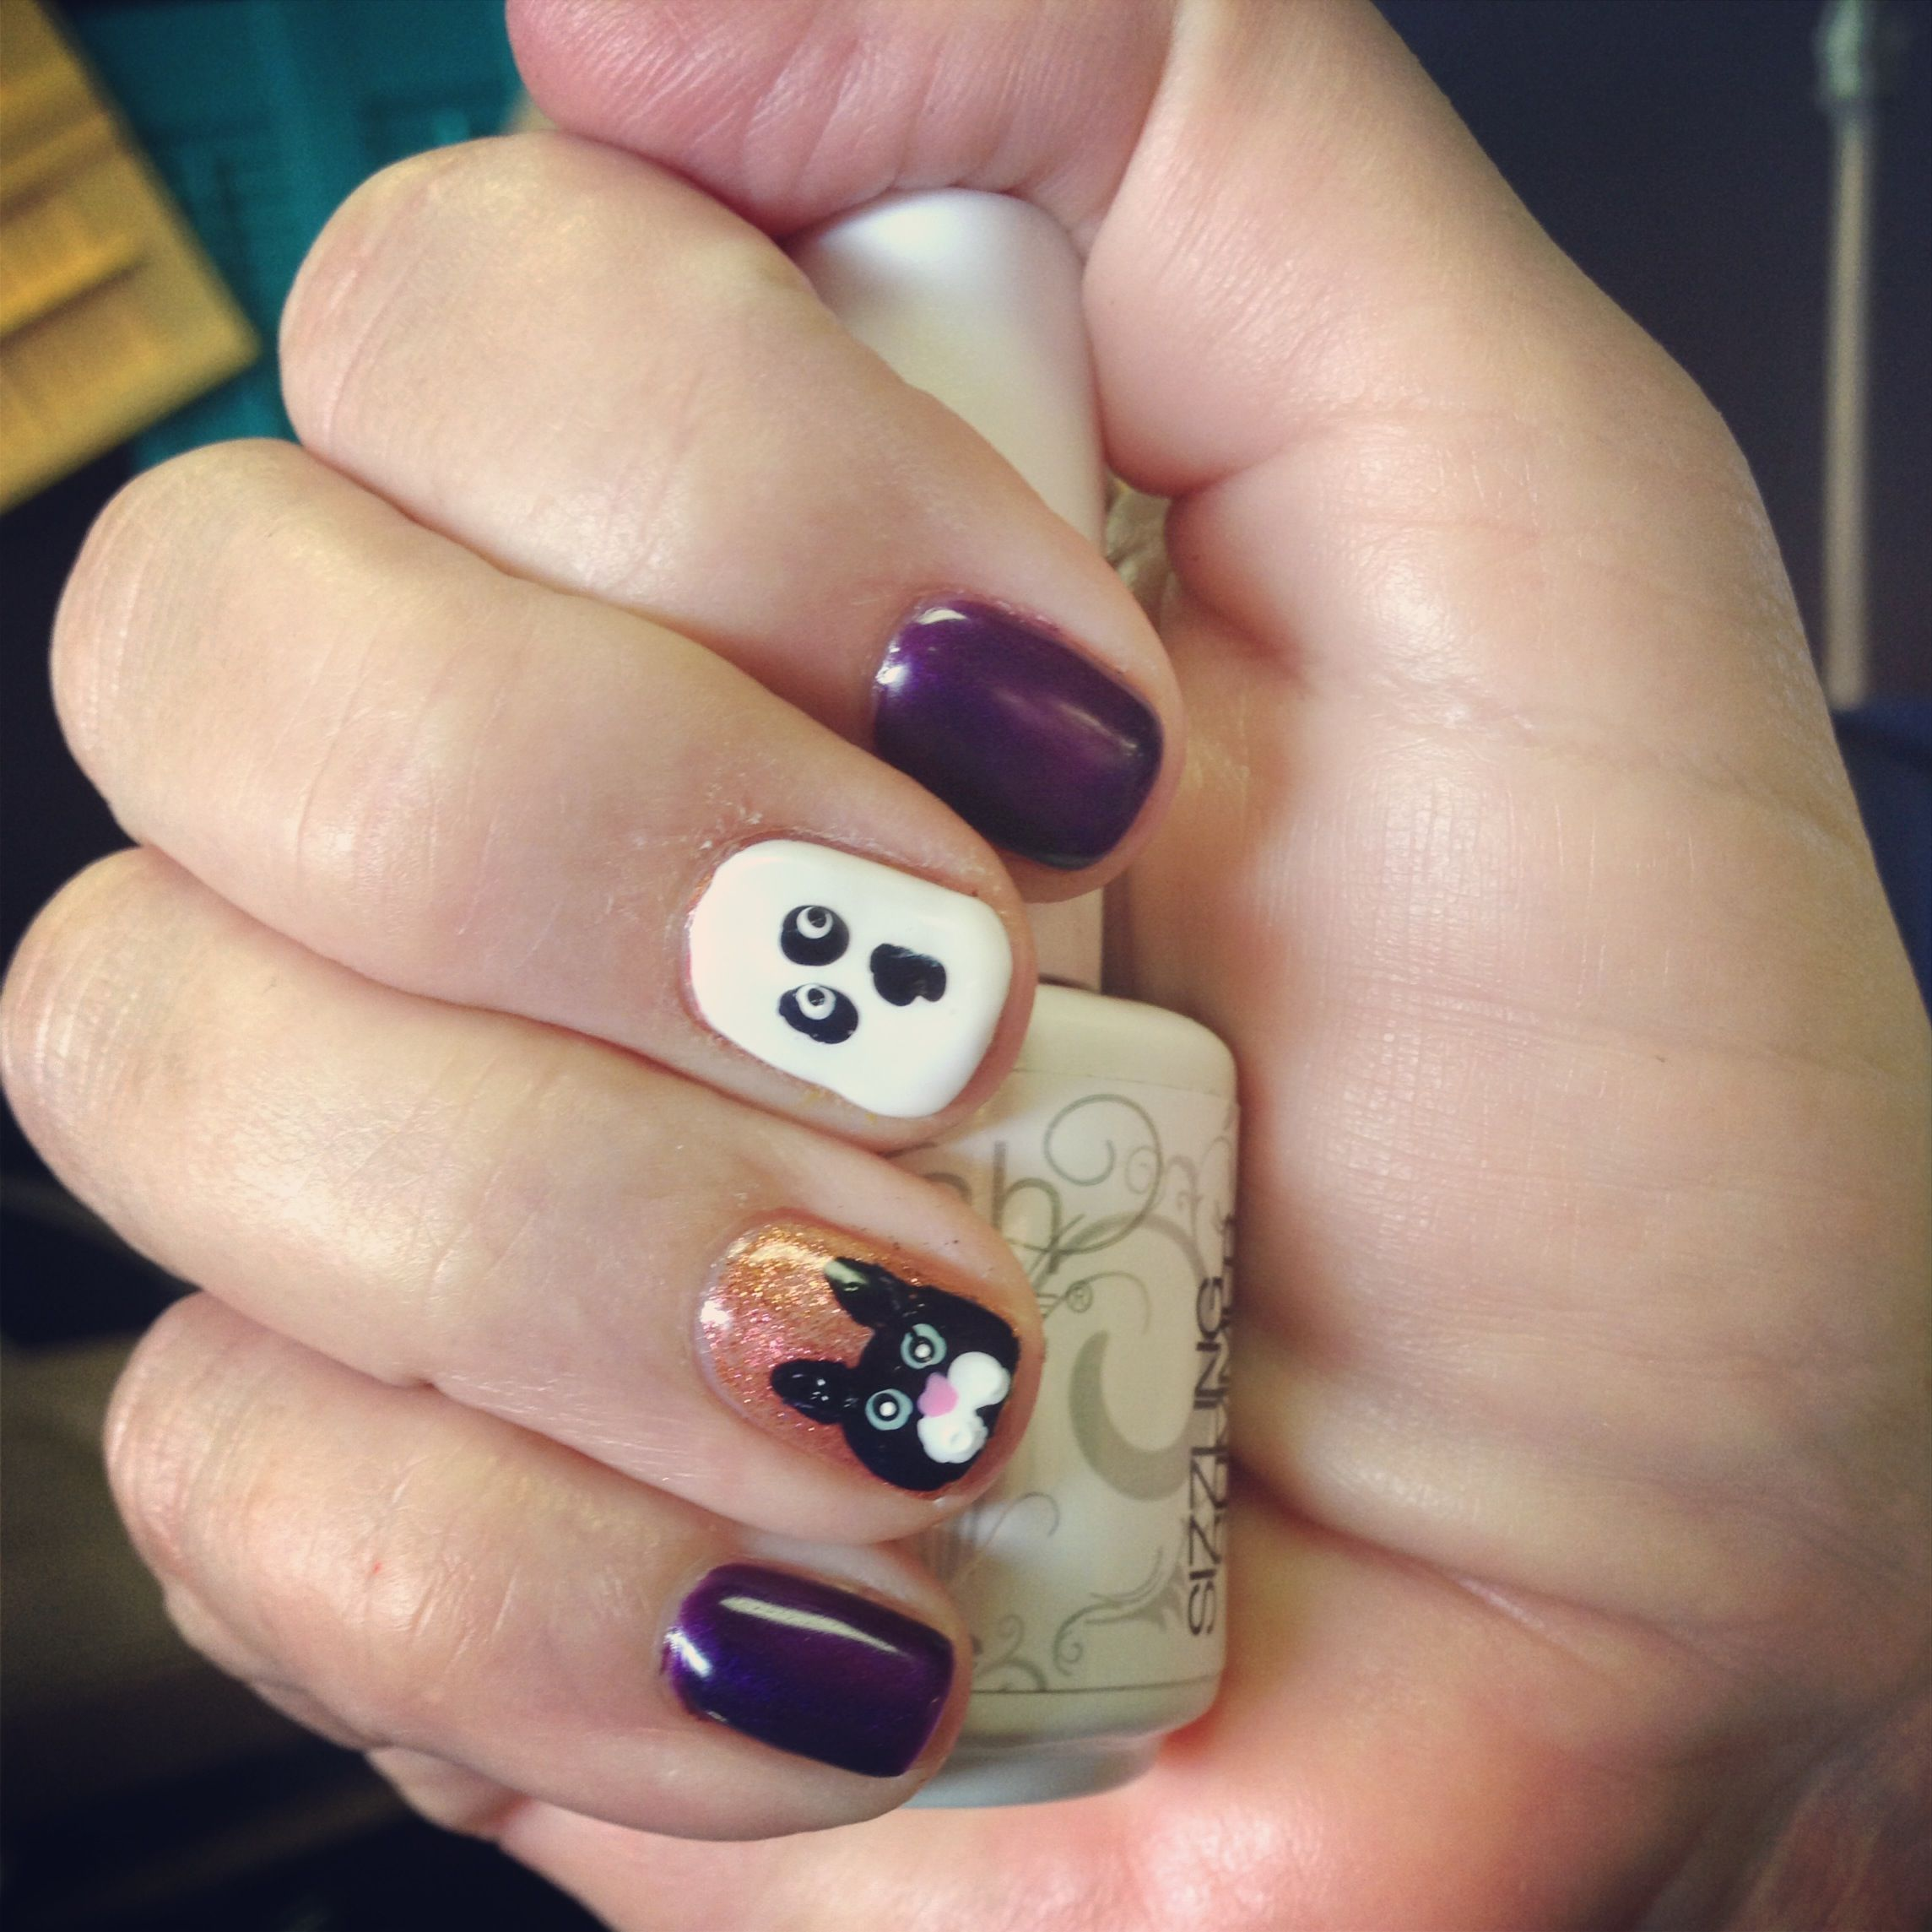 Fun halloween nails with cute ghosts and cats!!! Love fall ...